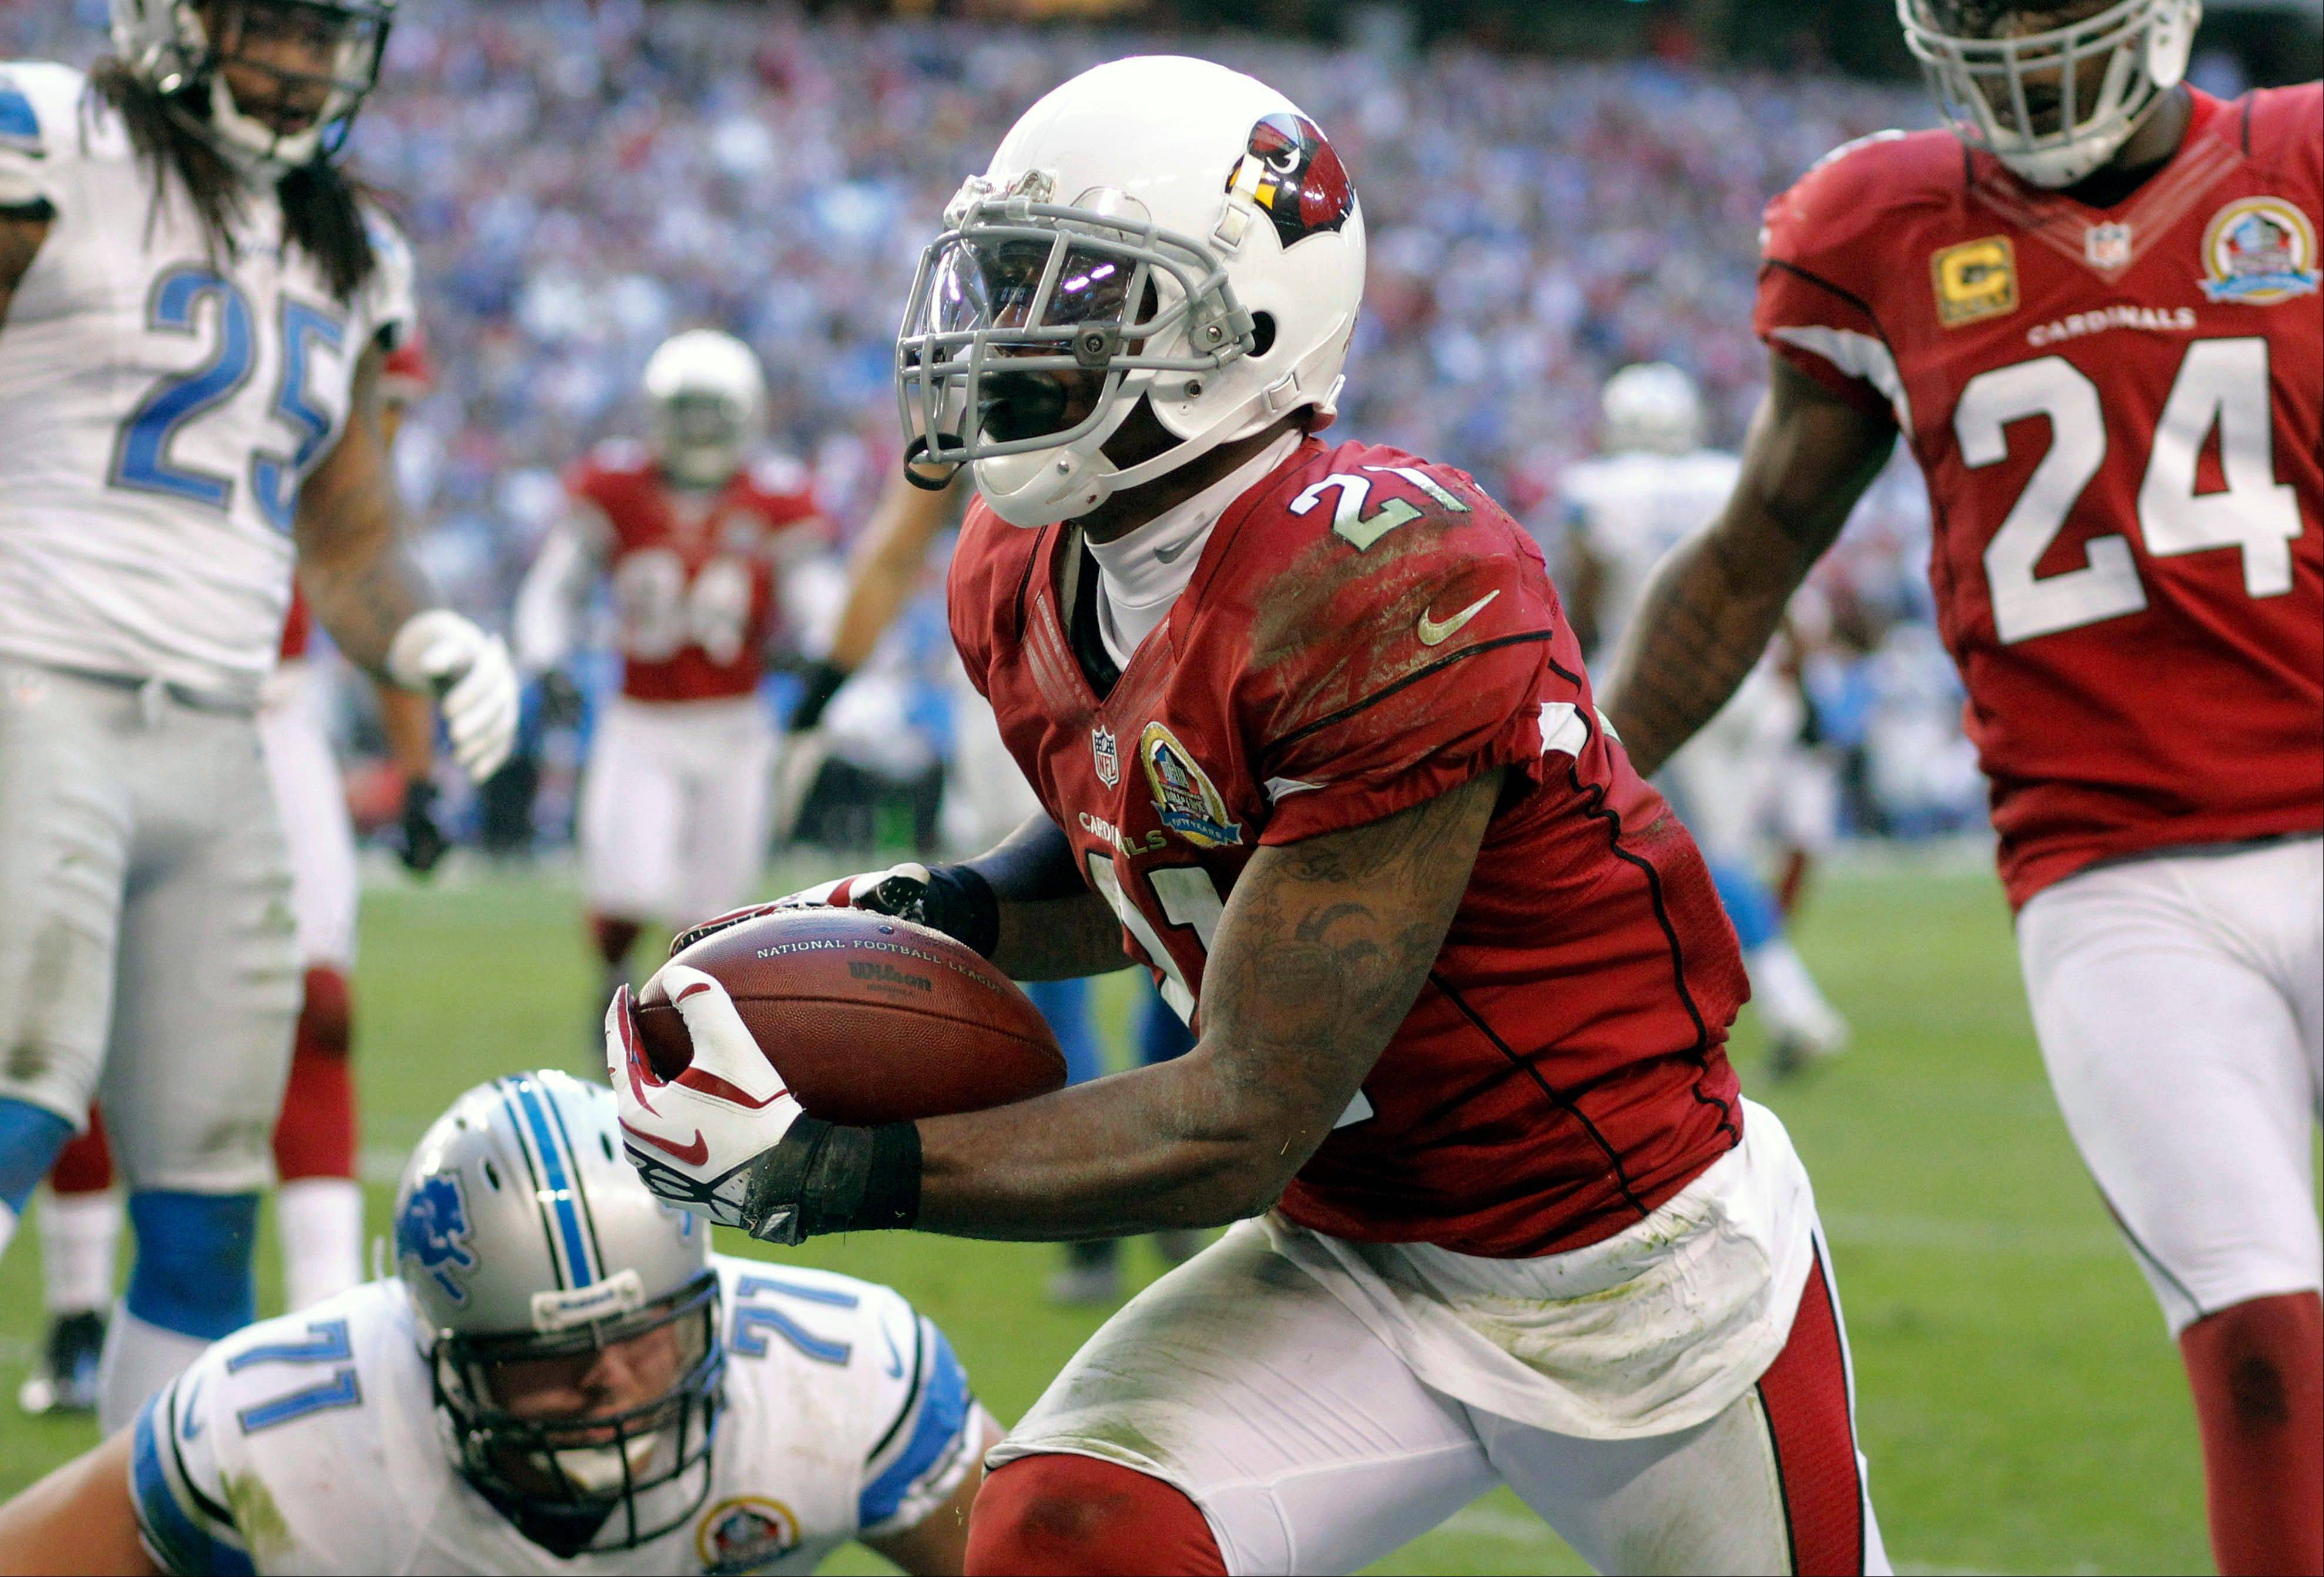 Patrick Peterson returned 4 punts for touchdowns last season, tying the league mark set previously by Devin Hester and Detroit�s Jack Christansen.